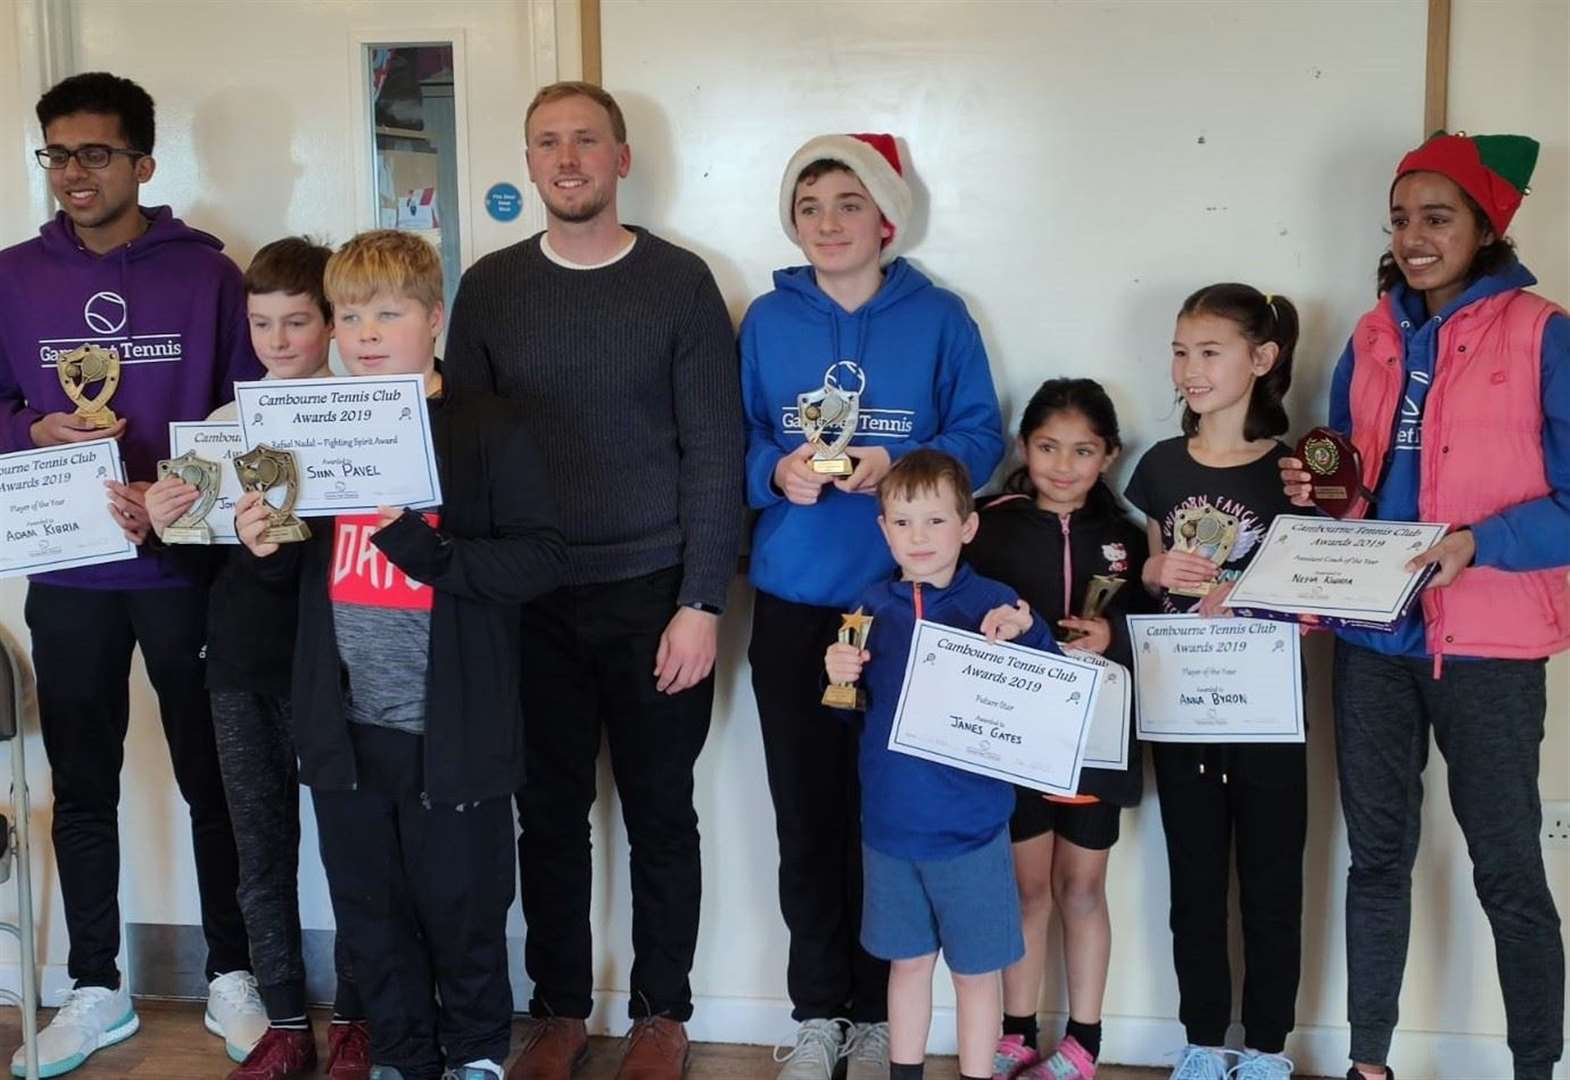 Aces serve up success at Cambourne Lawn Tennis Club